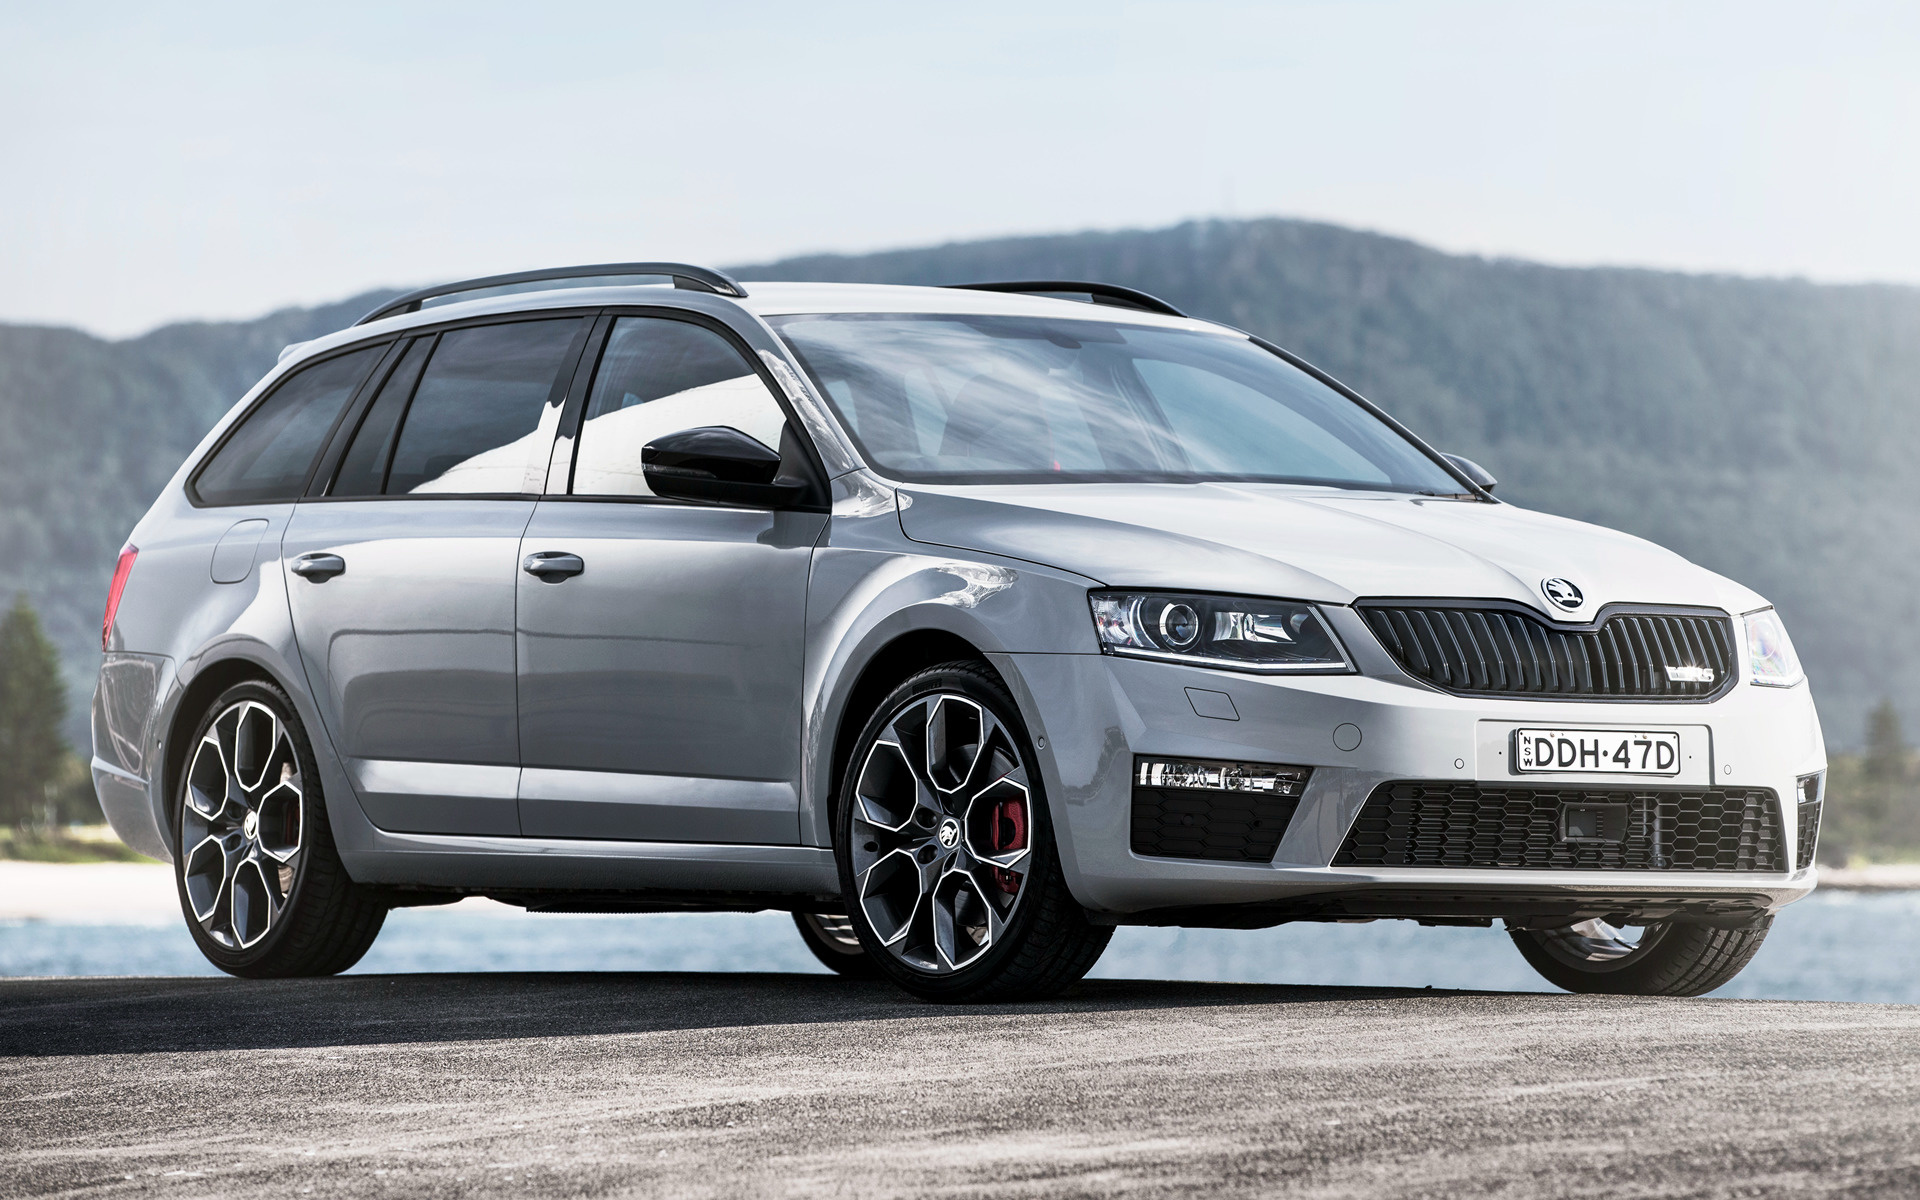 Skoda Octavia Rs >> 2014 Skoda Octavia RS Wagon (AU) - Wallpapers and HD ...